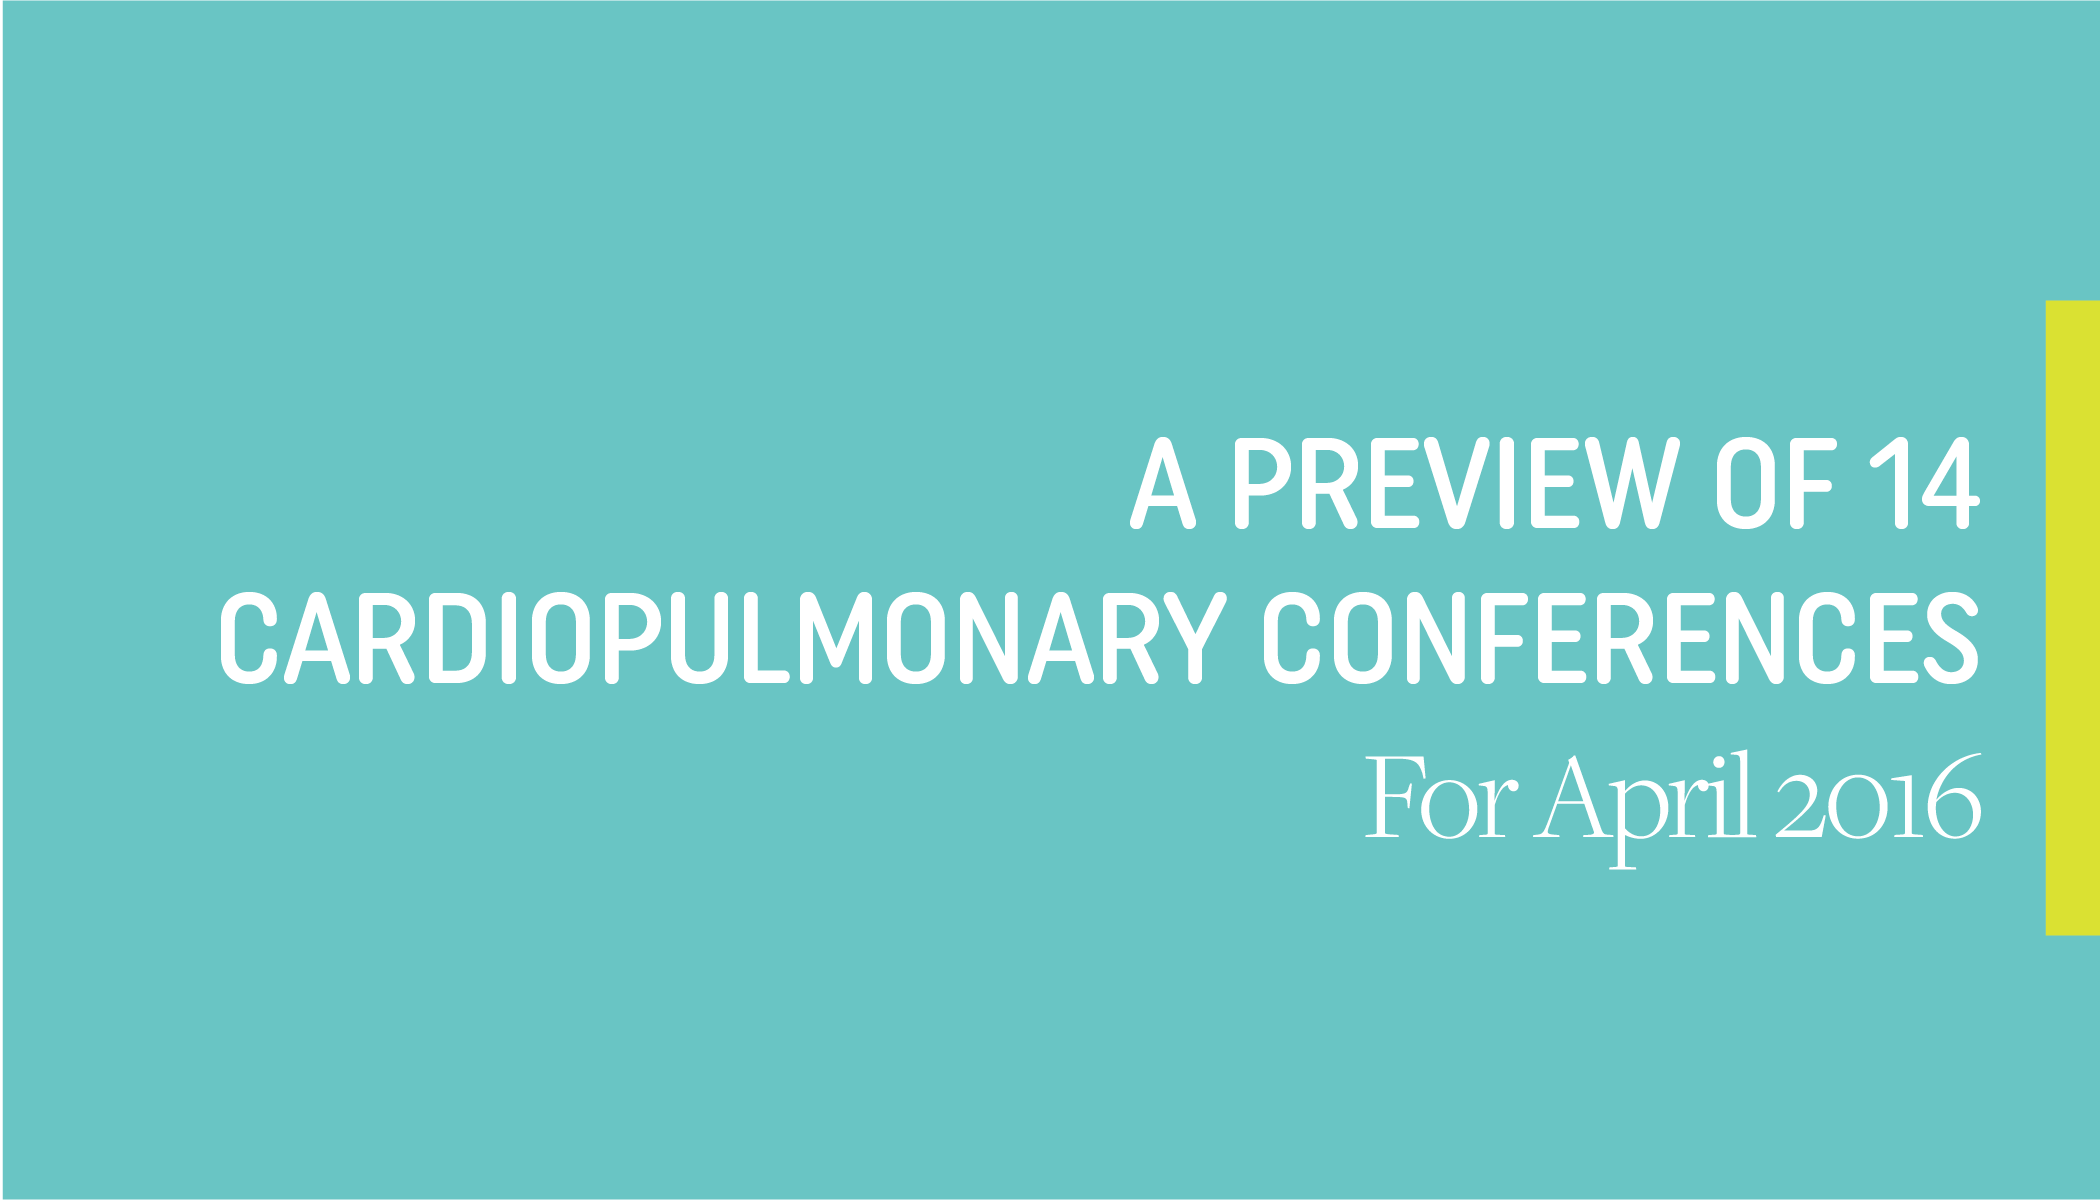 Don't Miss LSI at These 14 Cardiac and Pulmonary Conferences in April